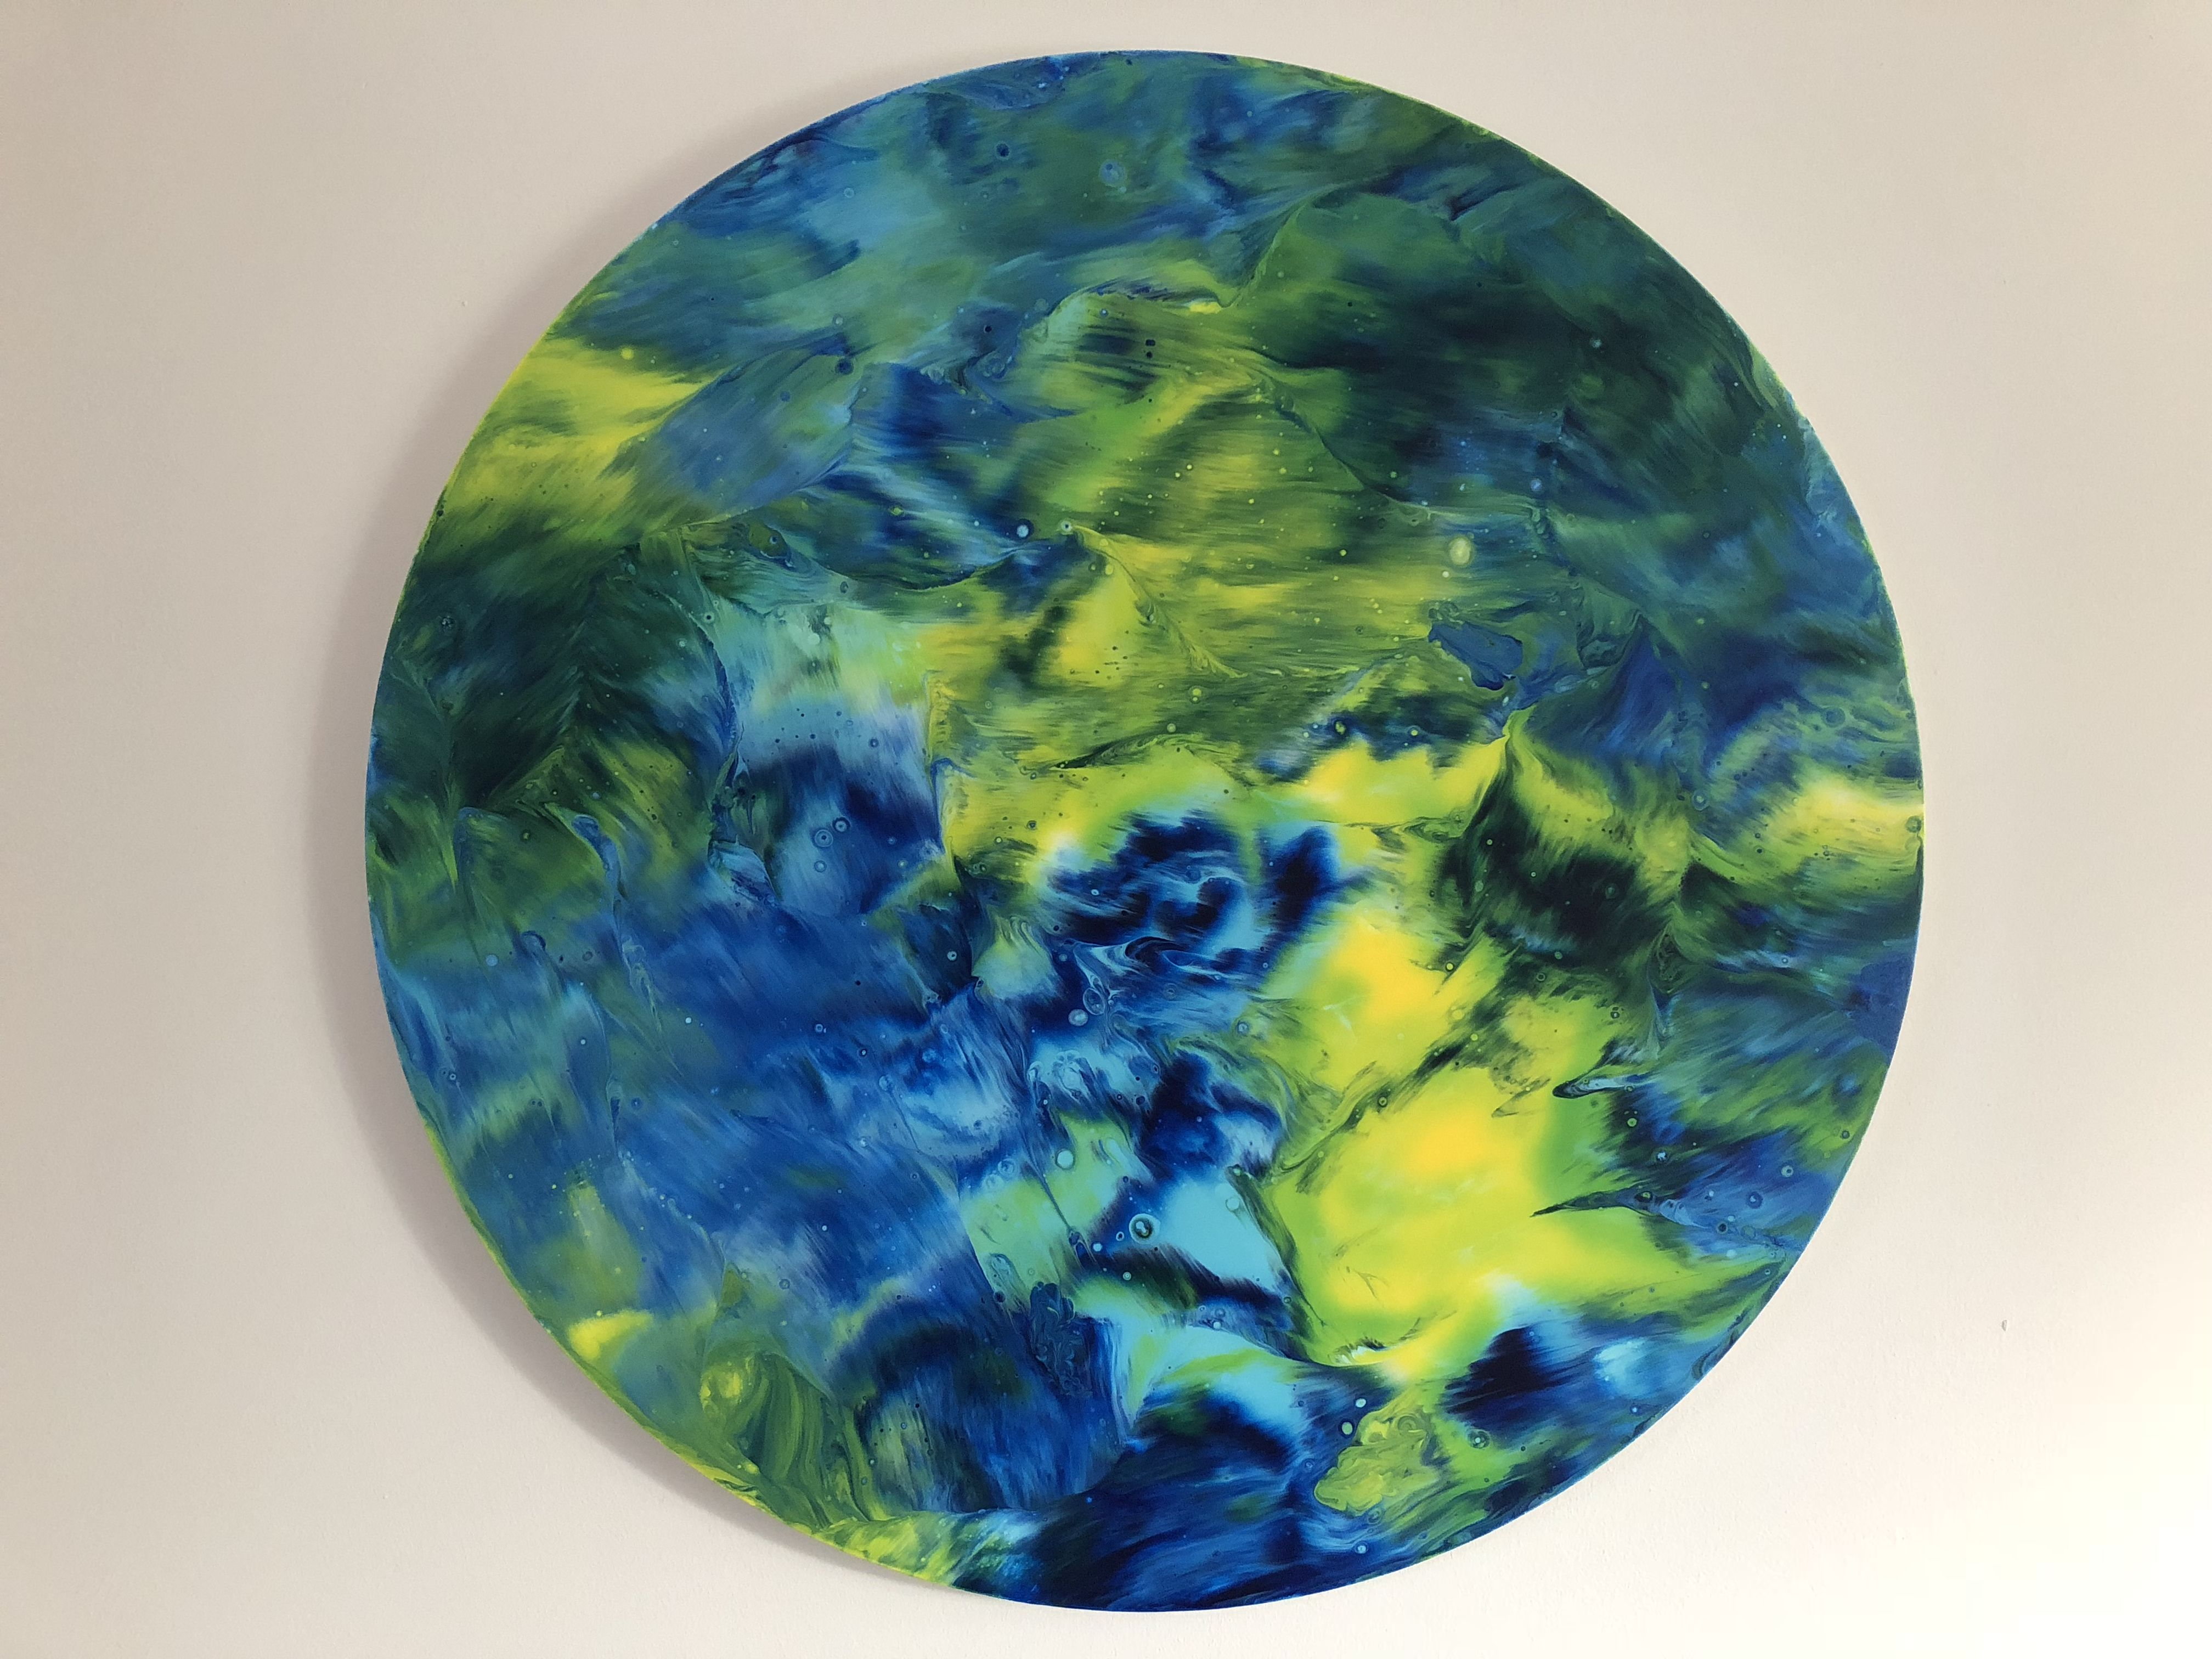 How To Paint Abstract Art On Circular Canvas